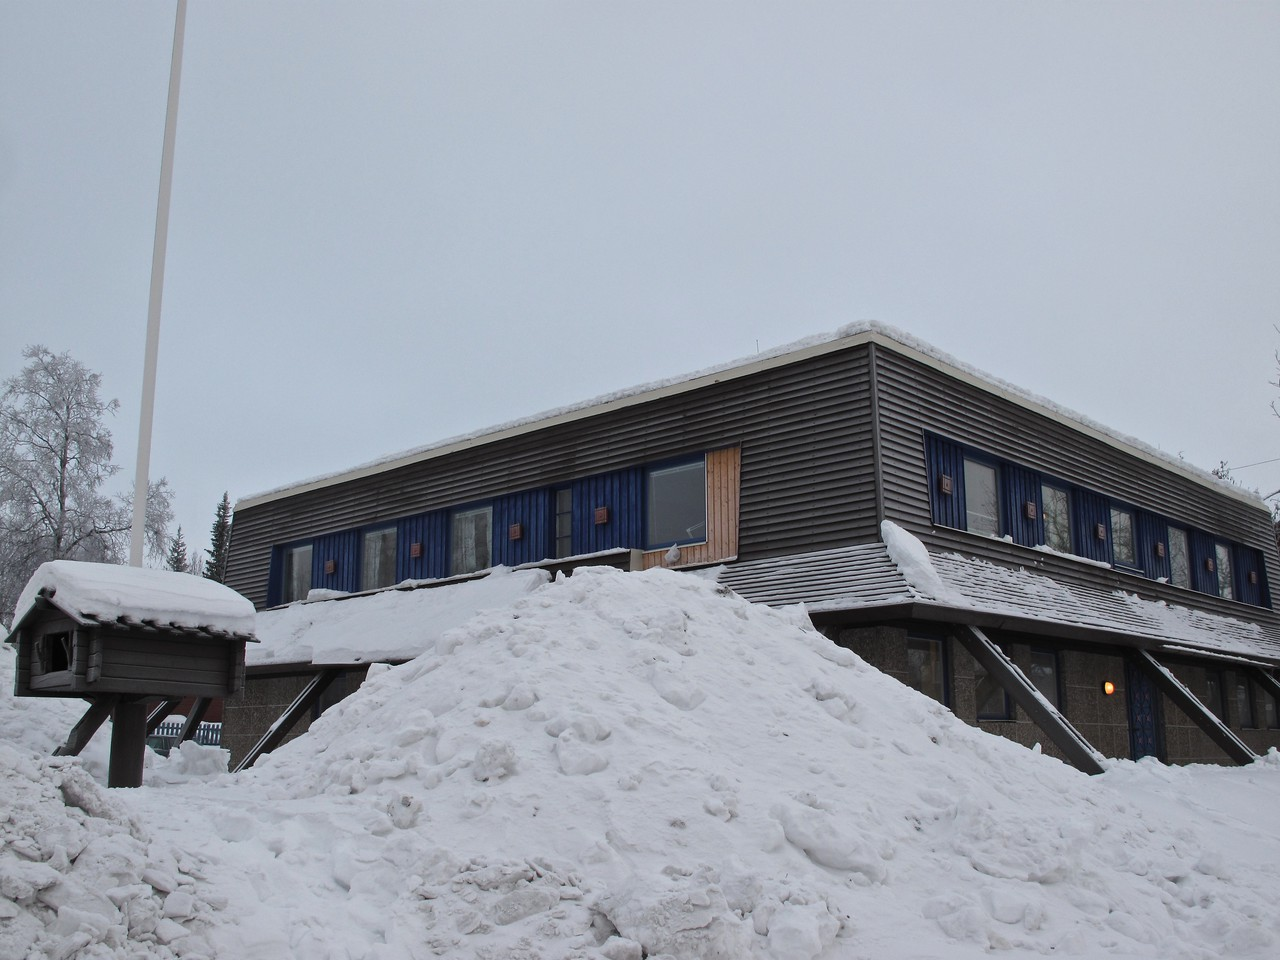 The hotel has 6 rooms and also  is a home to the owners, museum for the Sami in Kiruna and offices.